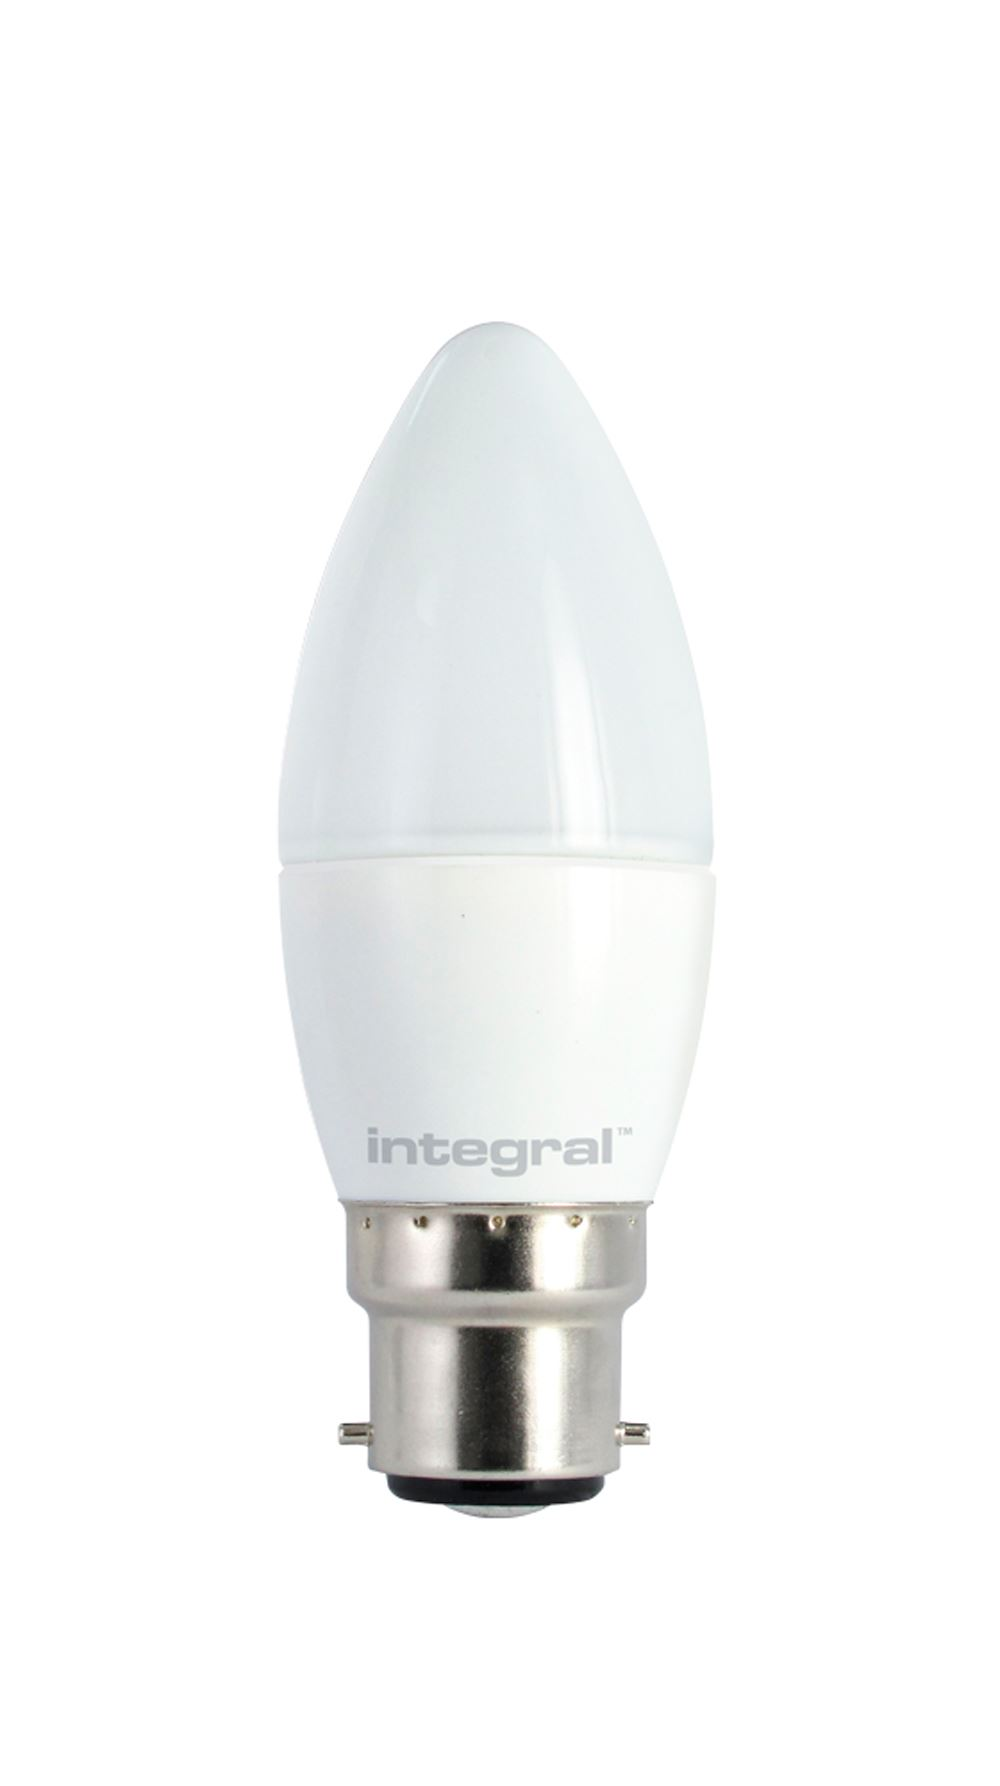 Daylight Led Bulbs: LED DIMMABLE Candle Bulbs Frosted Or Clear, Warm-White